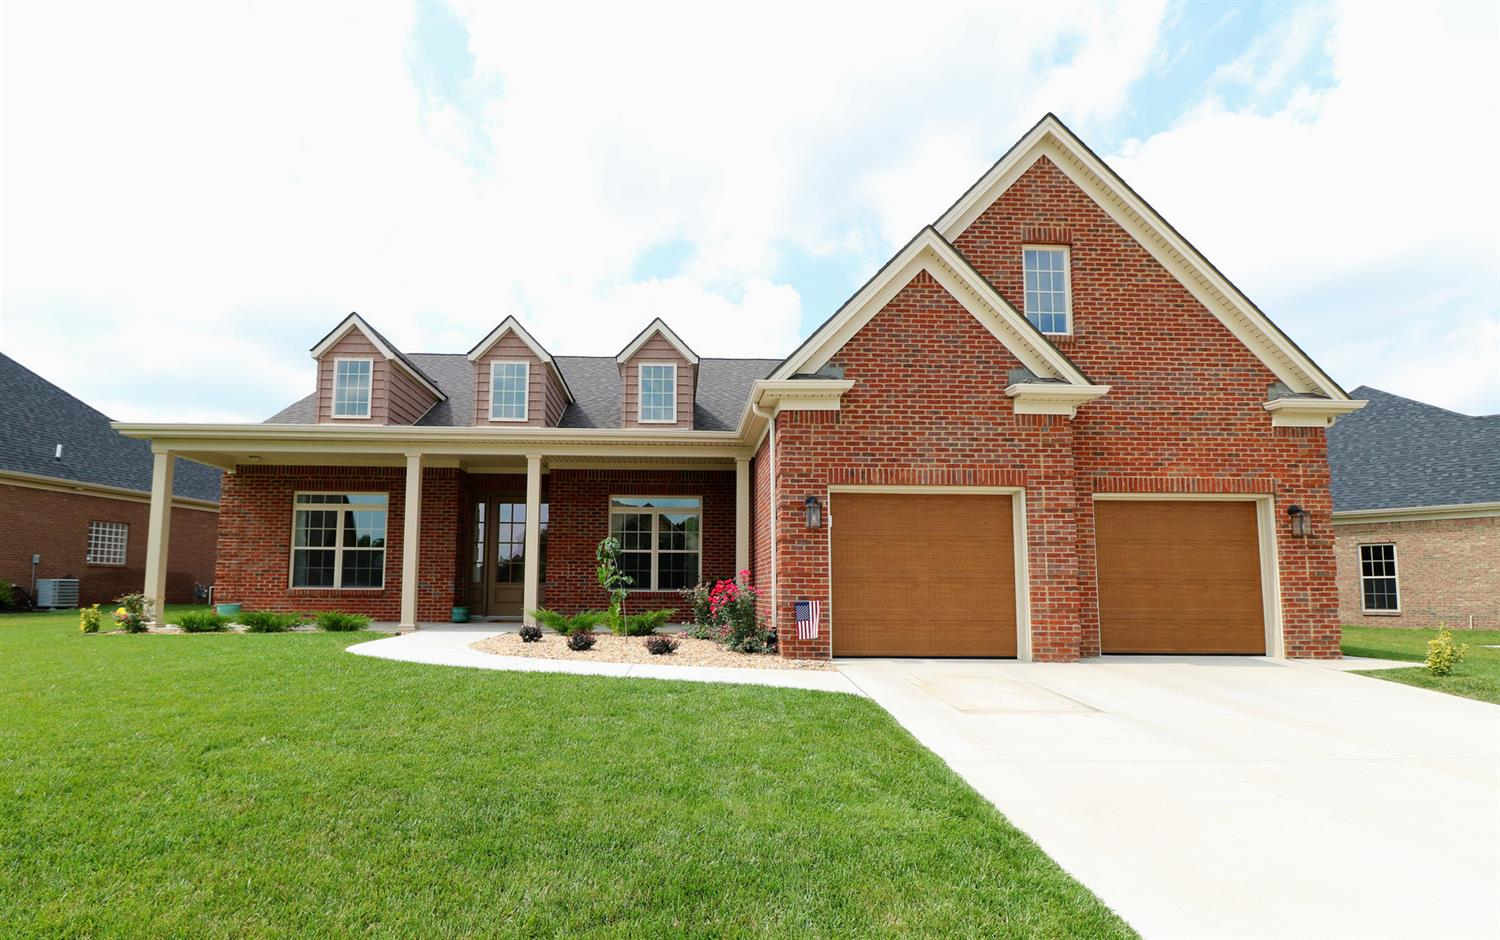 445 Weston Park, Lexington, KY 40515